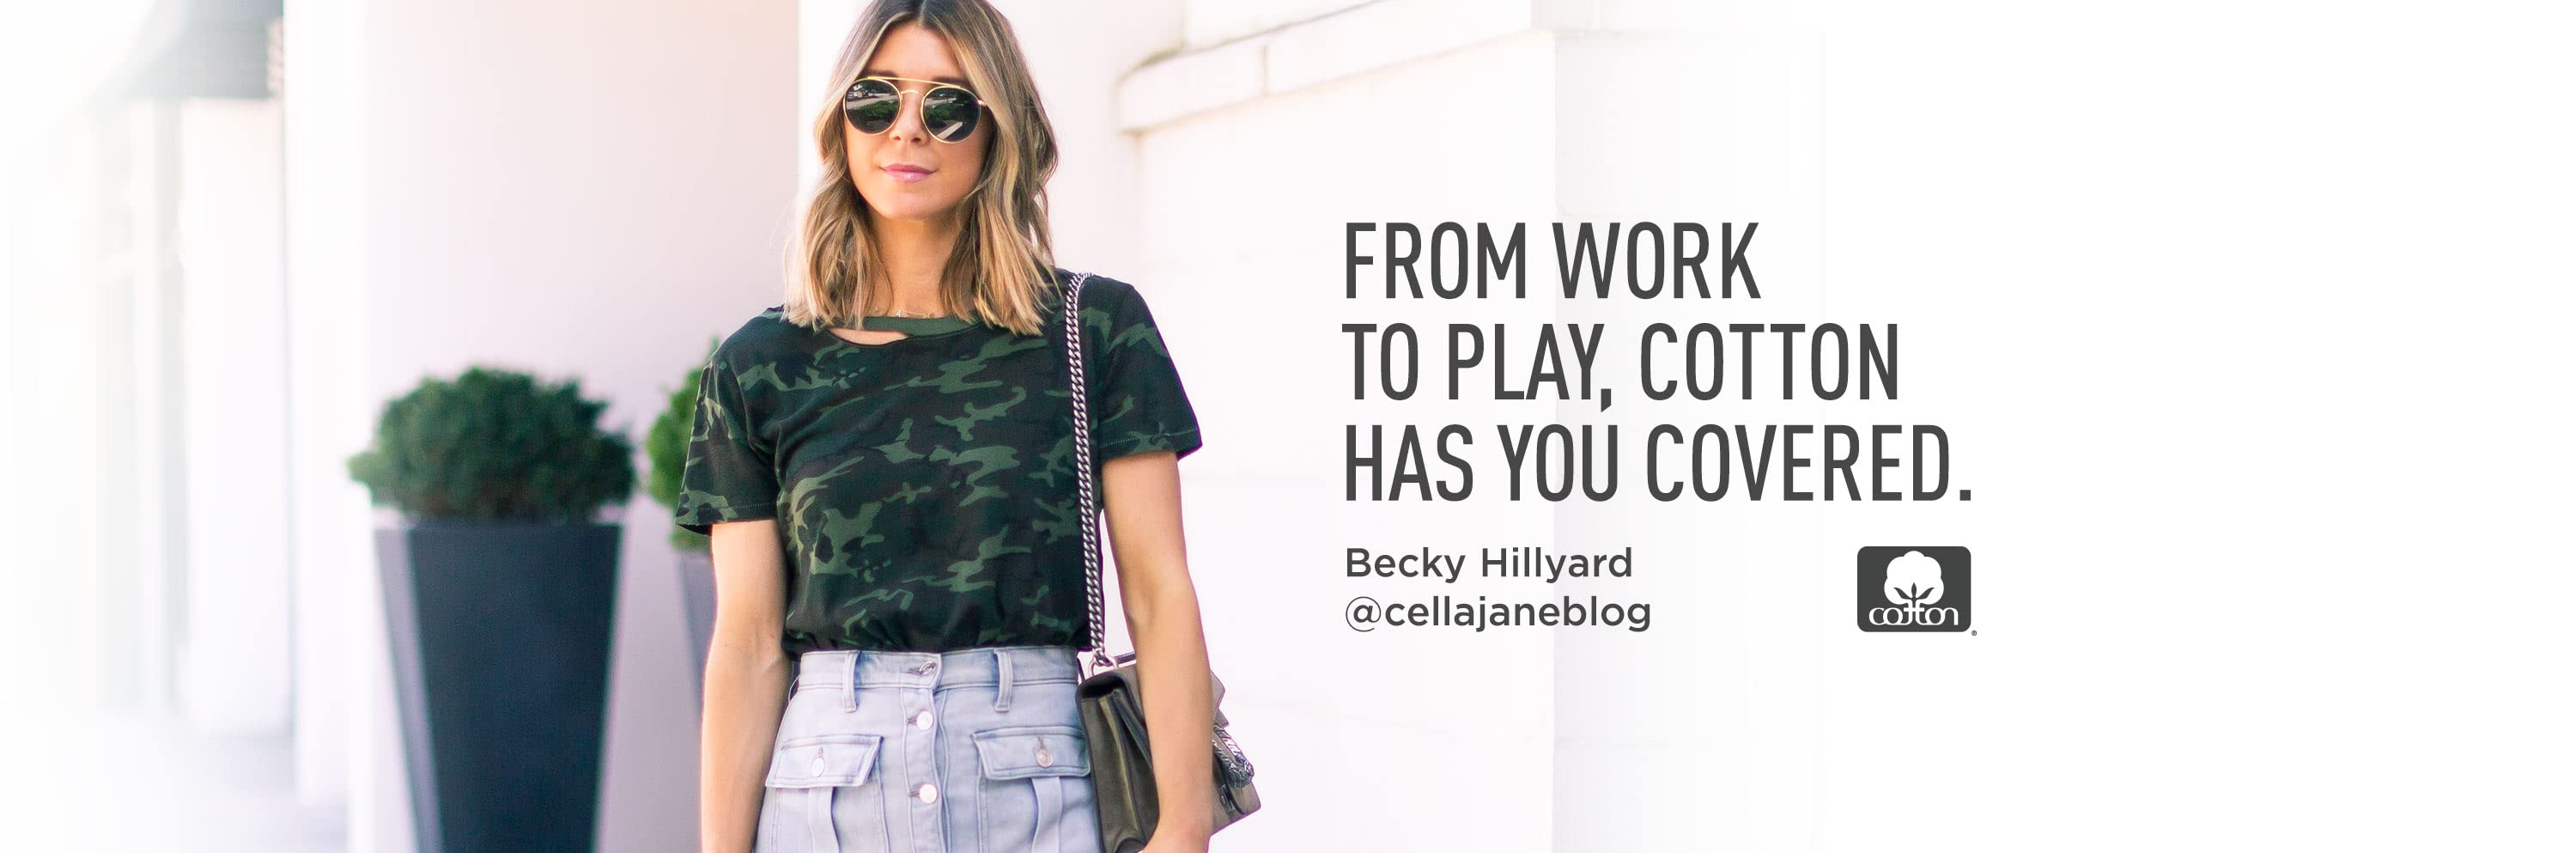 From work to play, cotton has you covered. Becky Hillyard. Cotton.